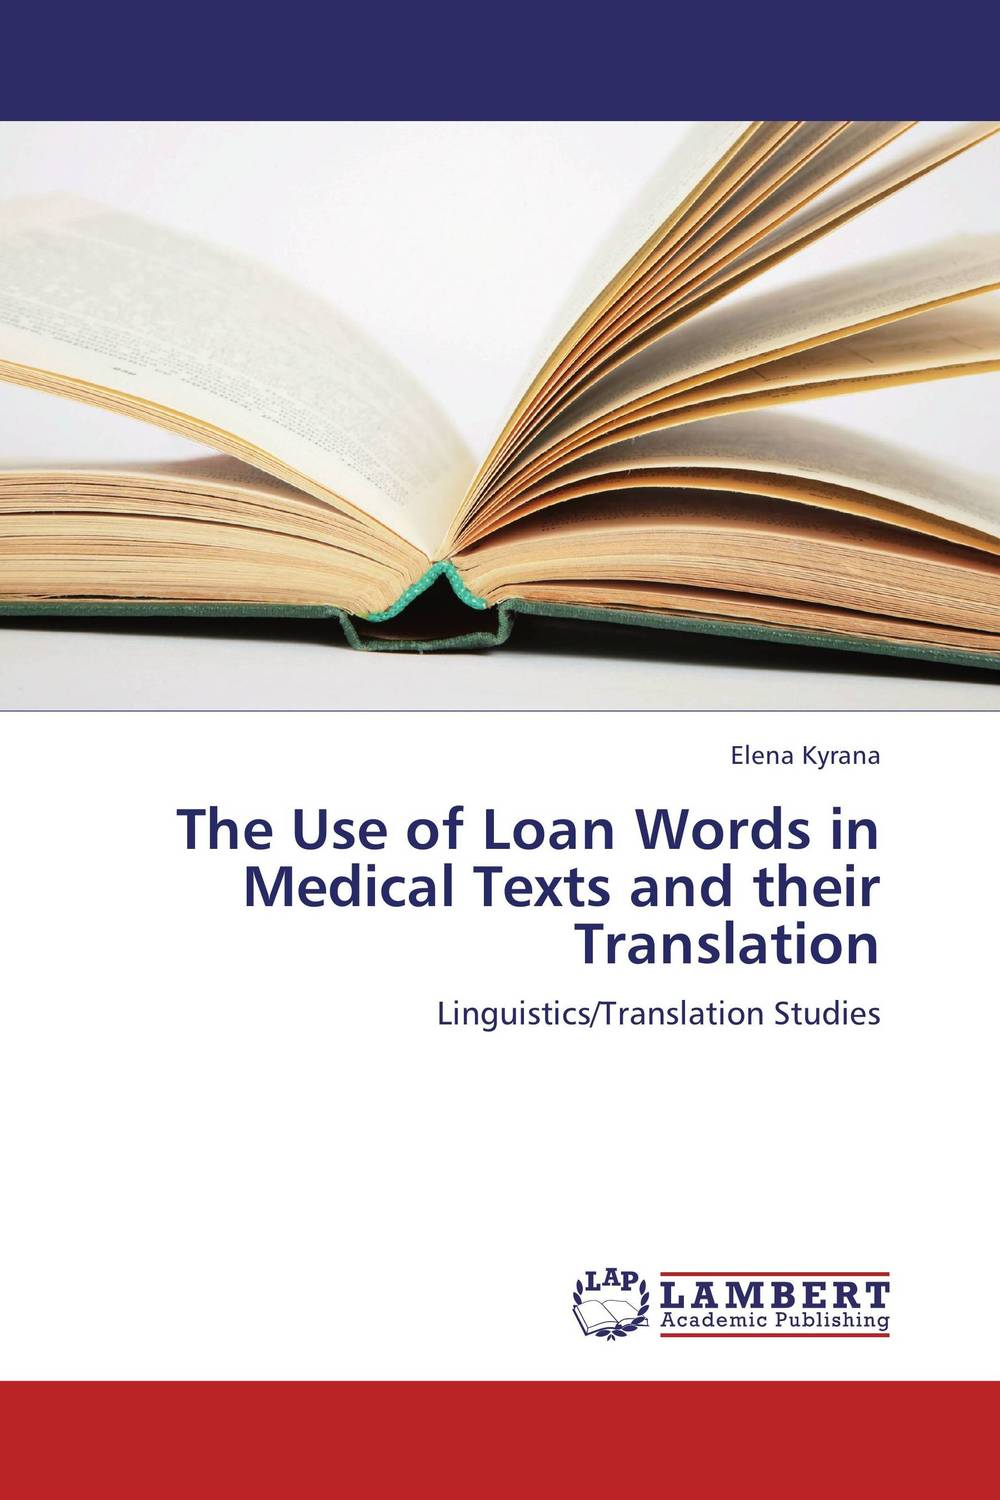 The Use of Loan Words in Medical Texts and their Translation the translation of figurative language